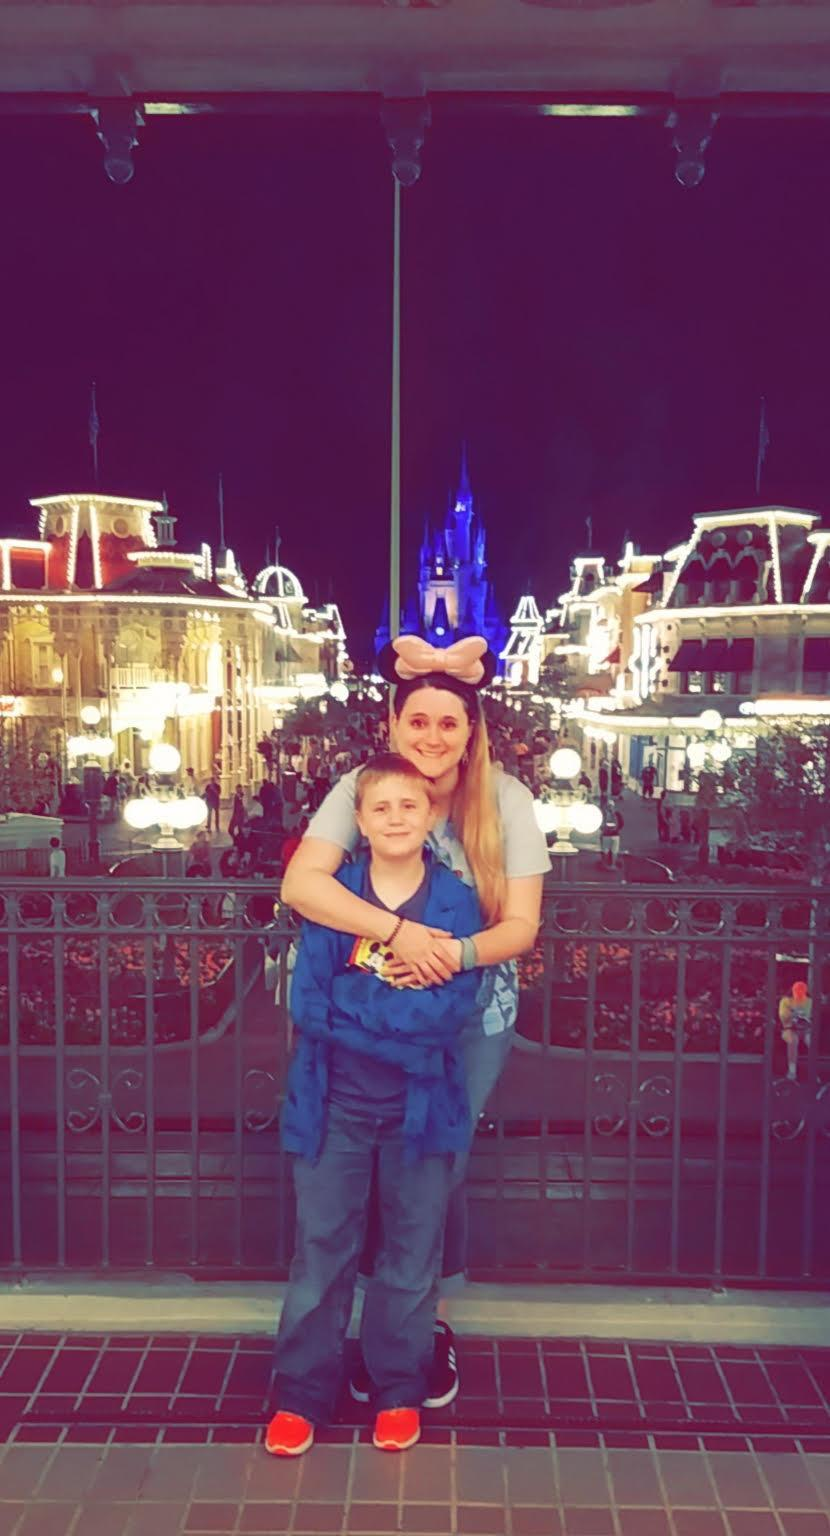 Danielle Scott, 31, and her 9-year-old son Aiden at Disney World. (Credit: State Farmers Market Restaurant)